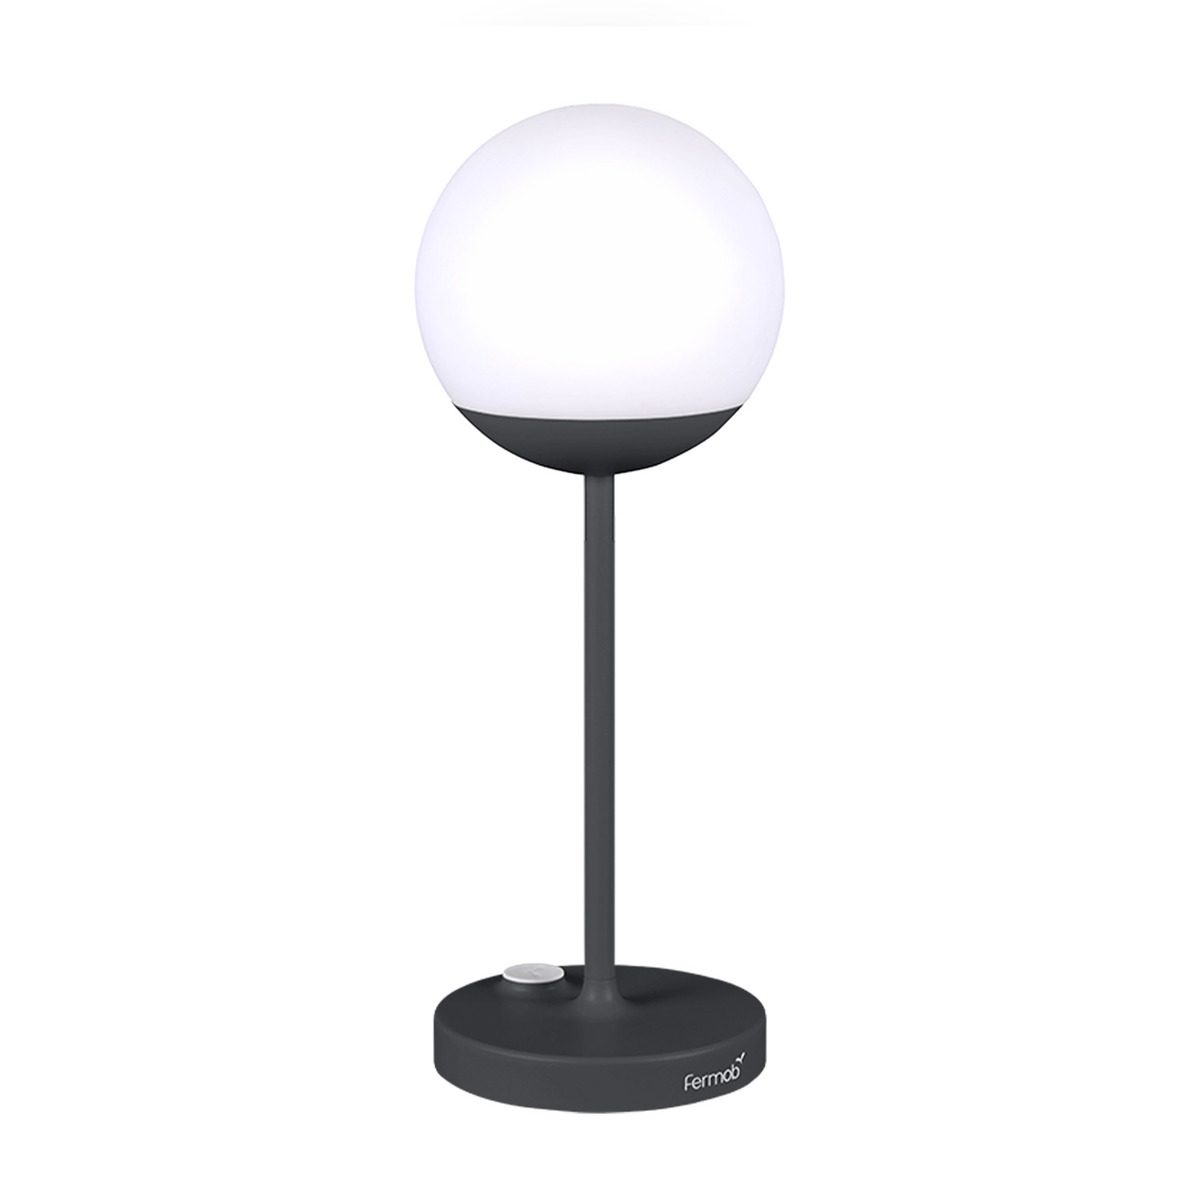 Fermob Mooon! table lamp, anthracite from Fermob